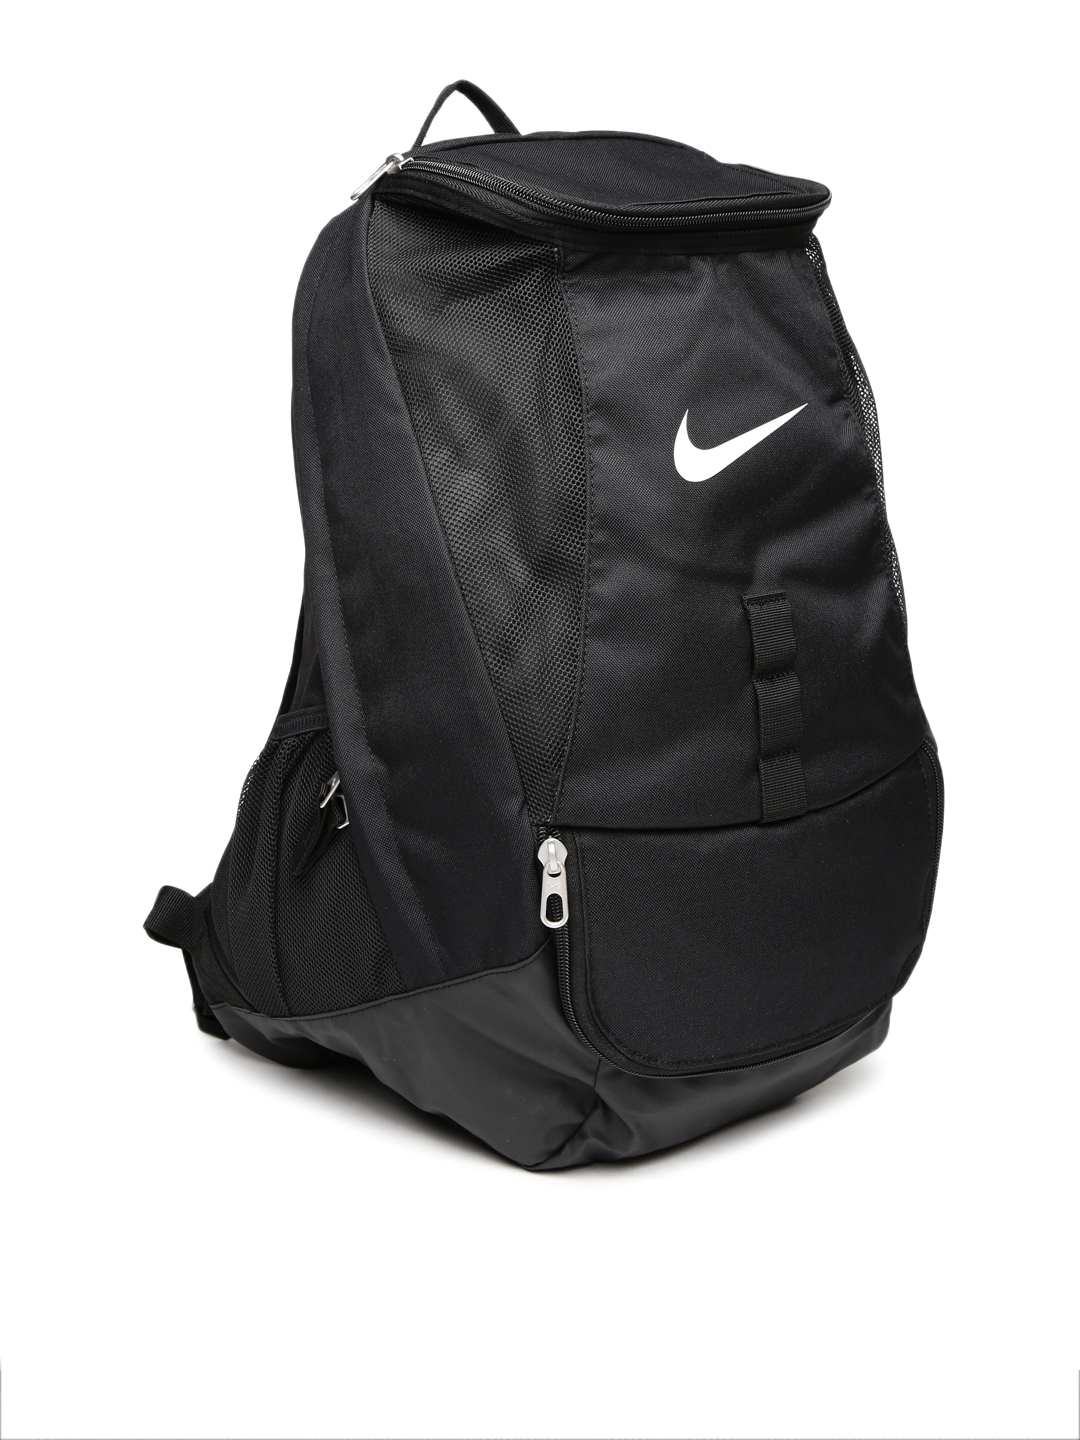 ... Buy Nike Unisex Black Club Team Swoosh Backpack - Backpacks more photos  081b9 540b8 ... ff93183faaa58